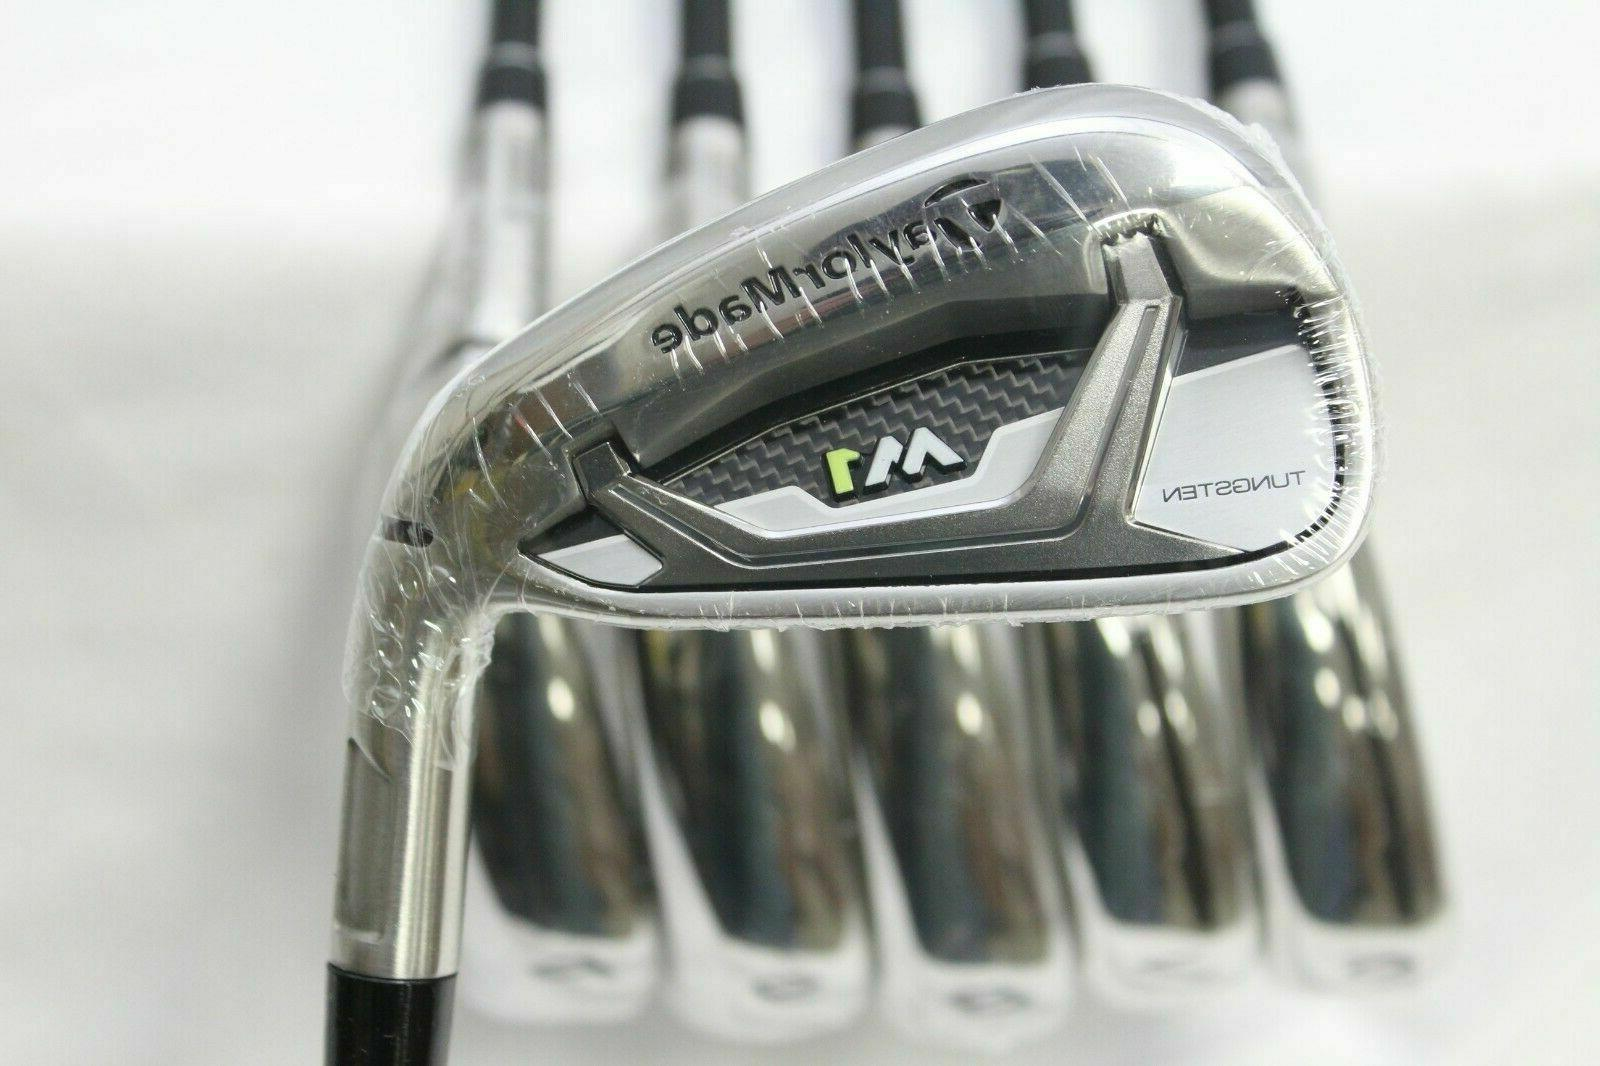 new rh m1 5 pw iron set